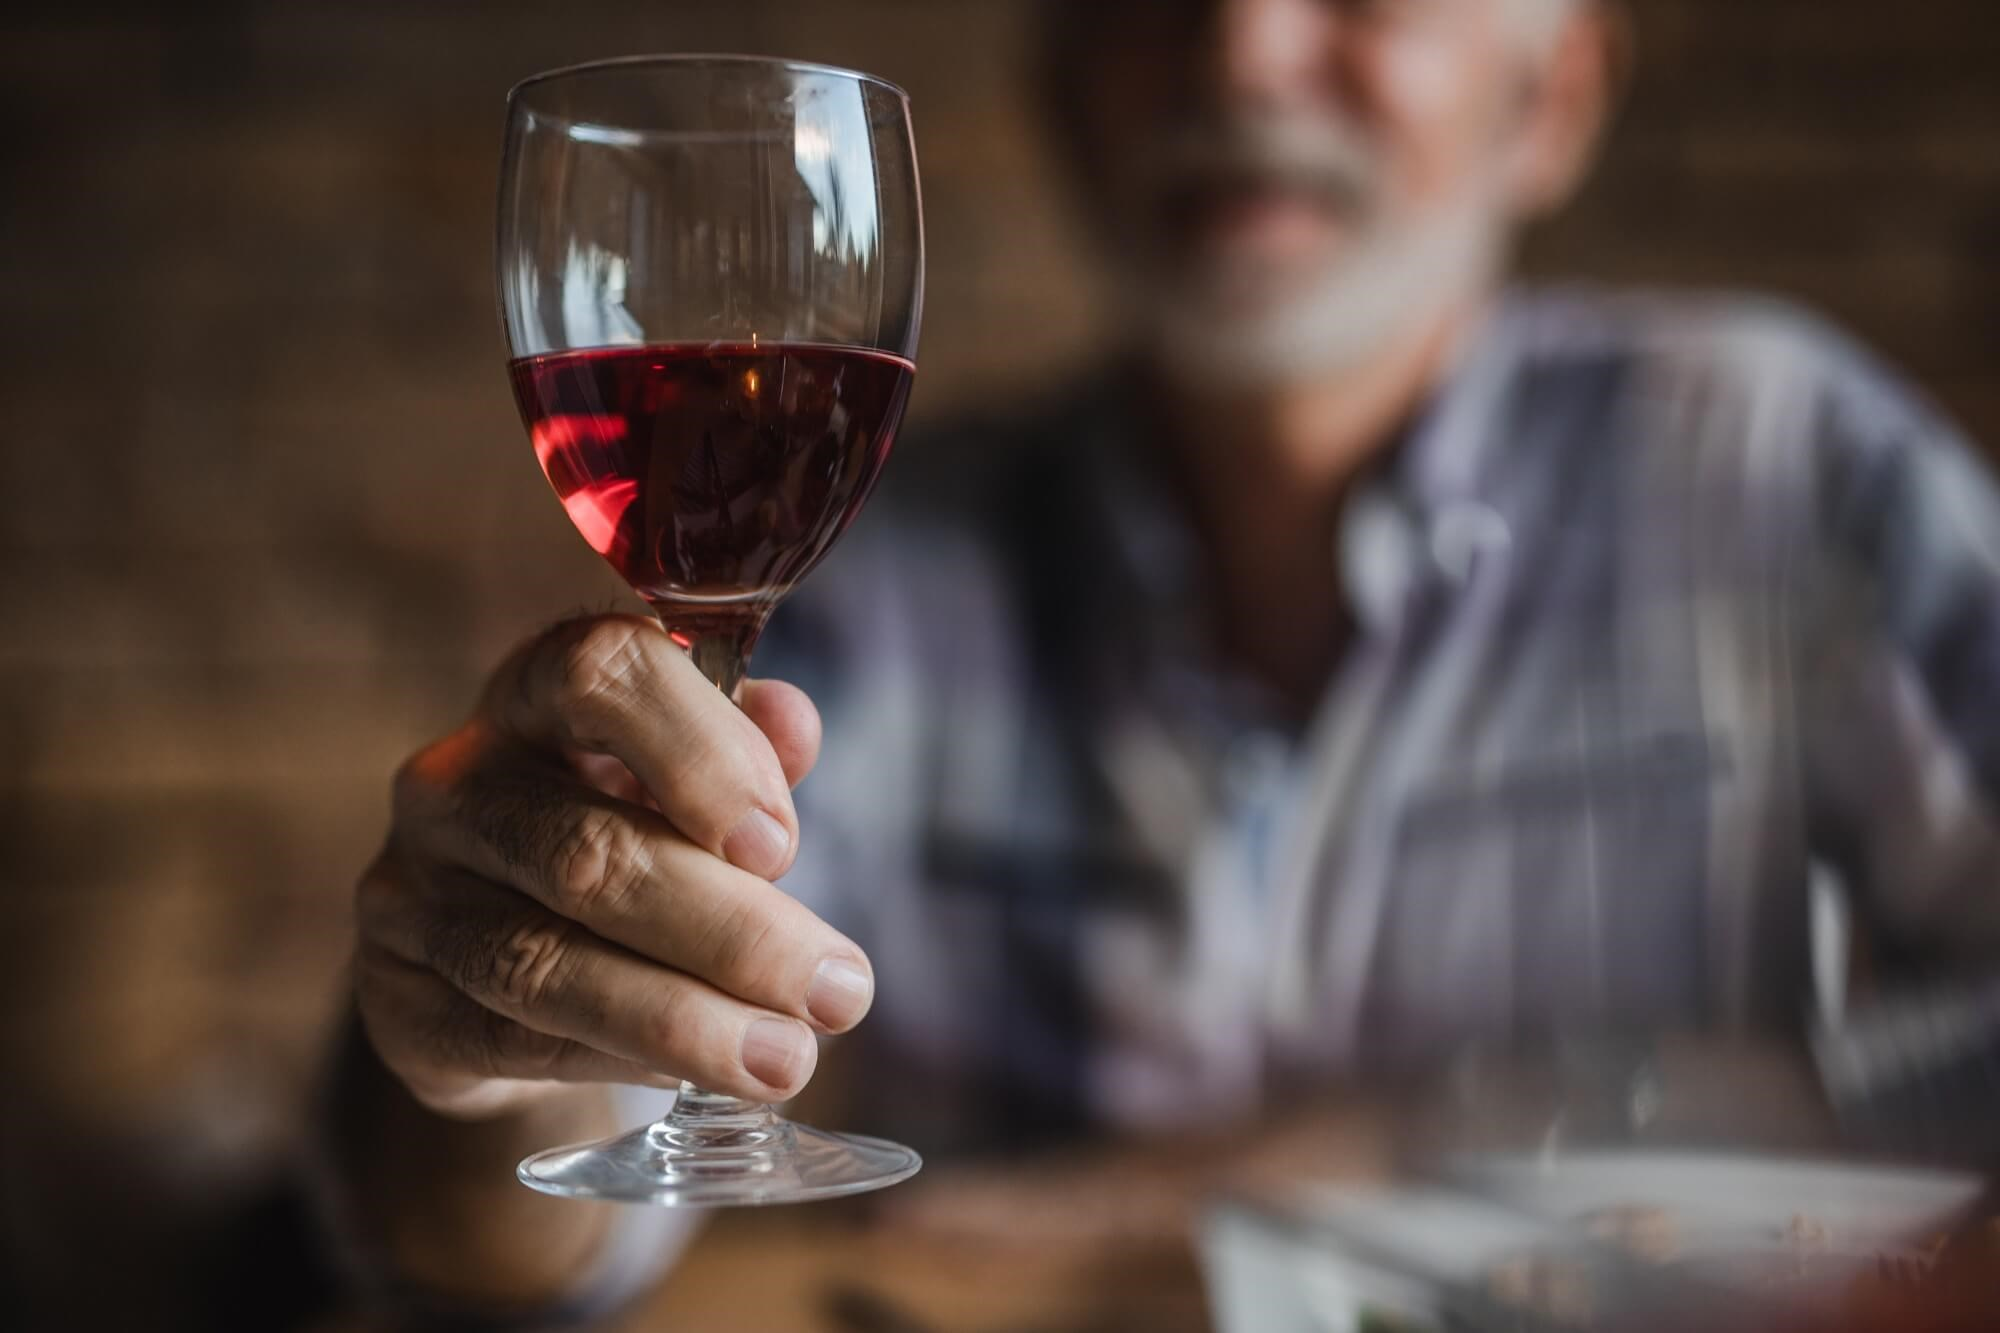 Compared with long-term abstinence from alcohol, limited alcohol consumption by older adults with incident heart failure is associated with a survival benefit.